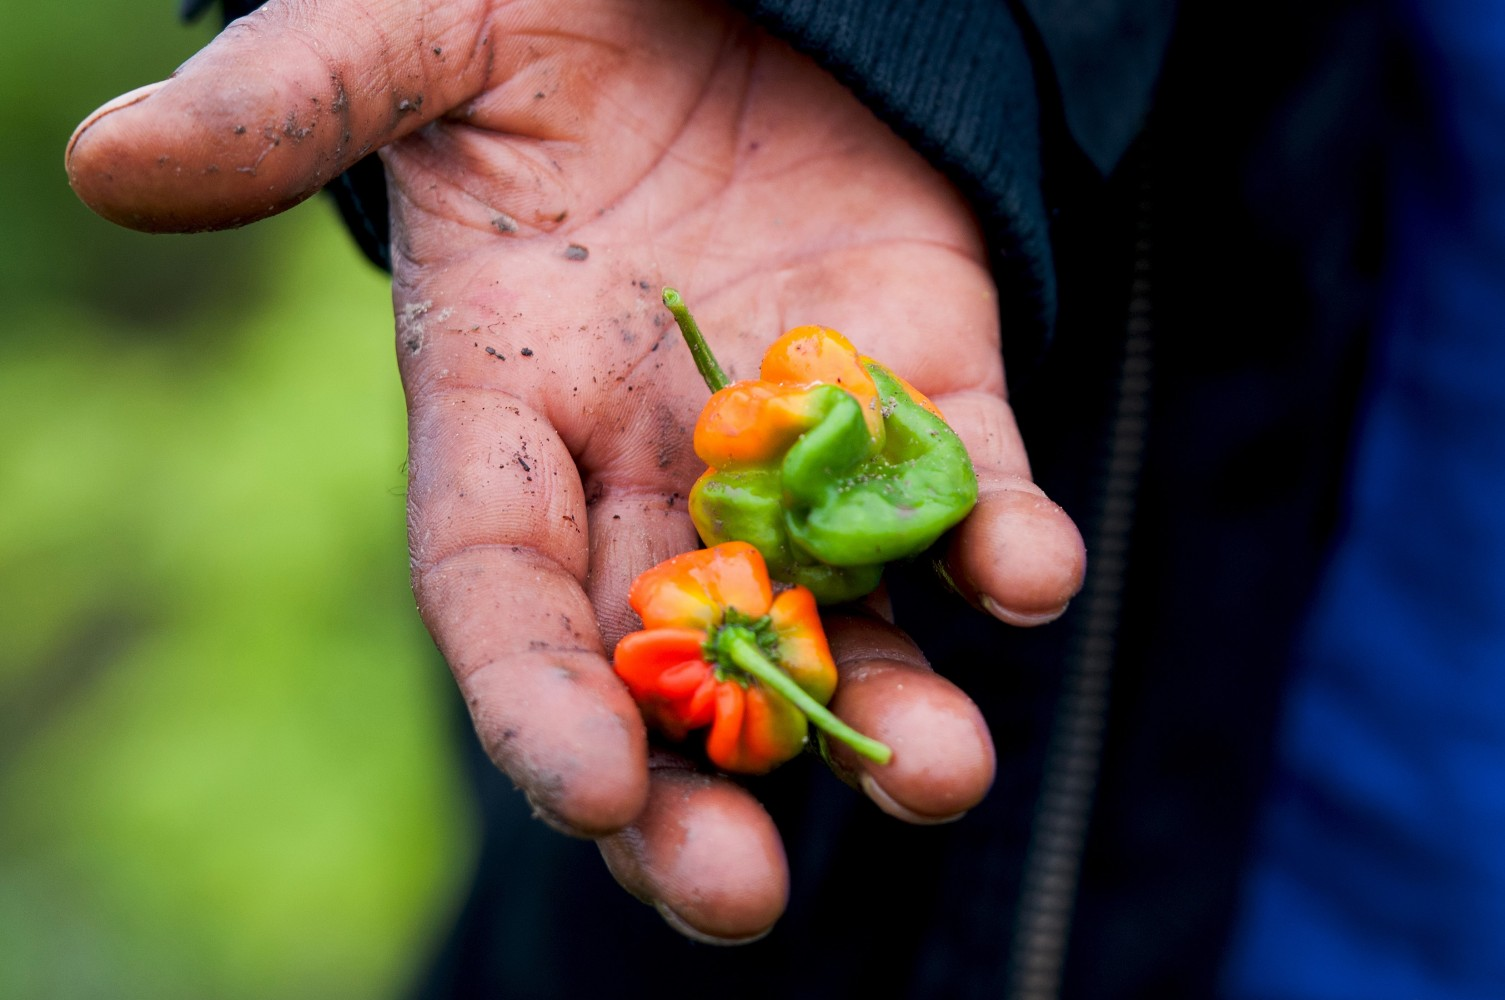 Want to avoid those long lines for food? Why not grow your own